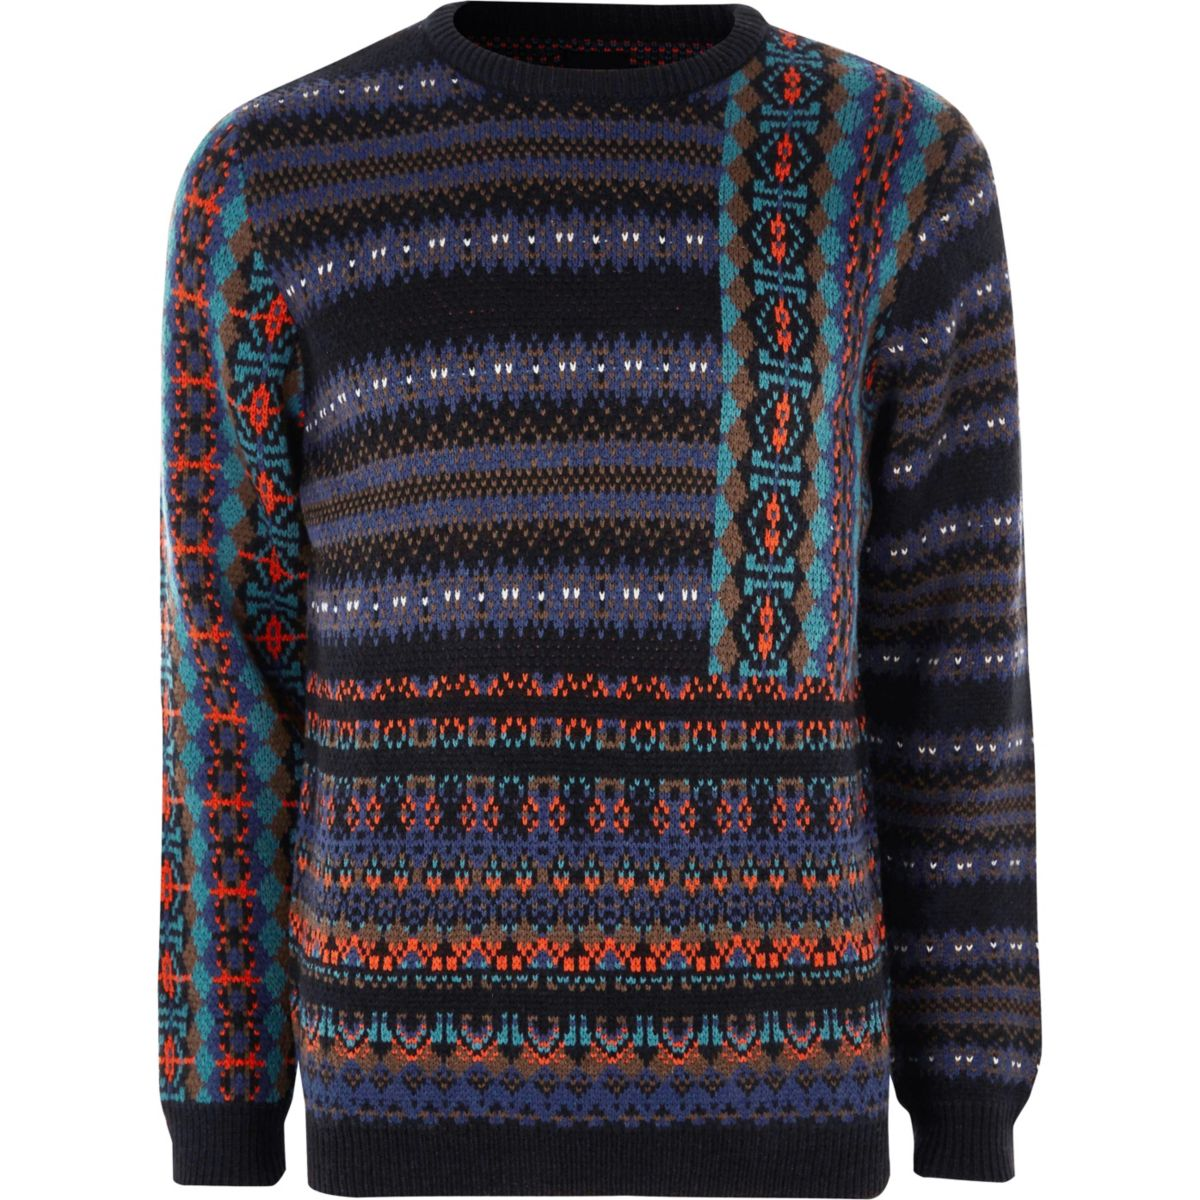 Navy mixed Fairisle knit Christmas jumper